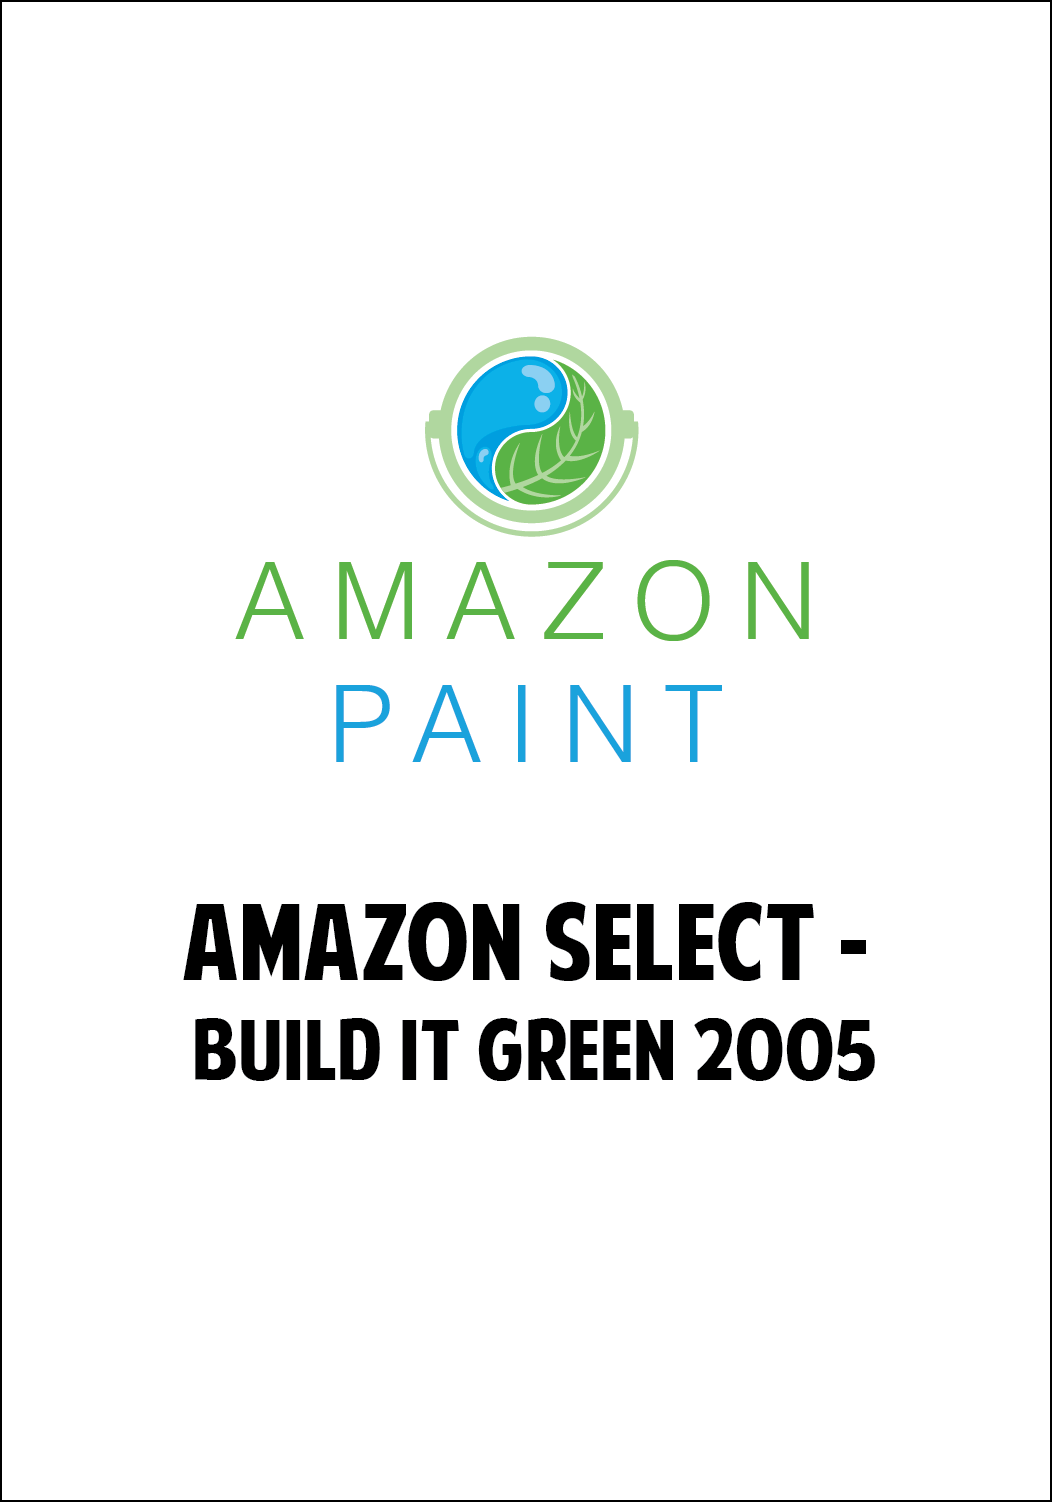 Amazon Select - Build it Green 2005